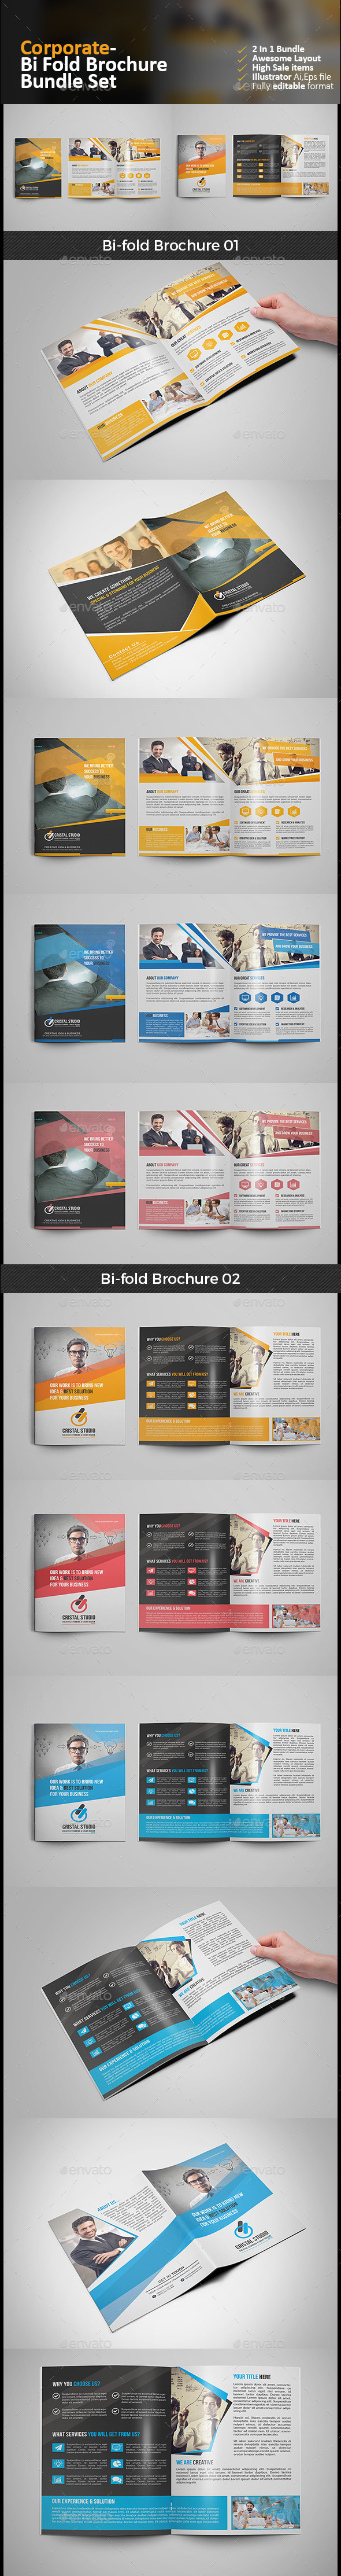 Bi Fold Brochure Bundle 2 in 1 - Corporate Brochures